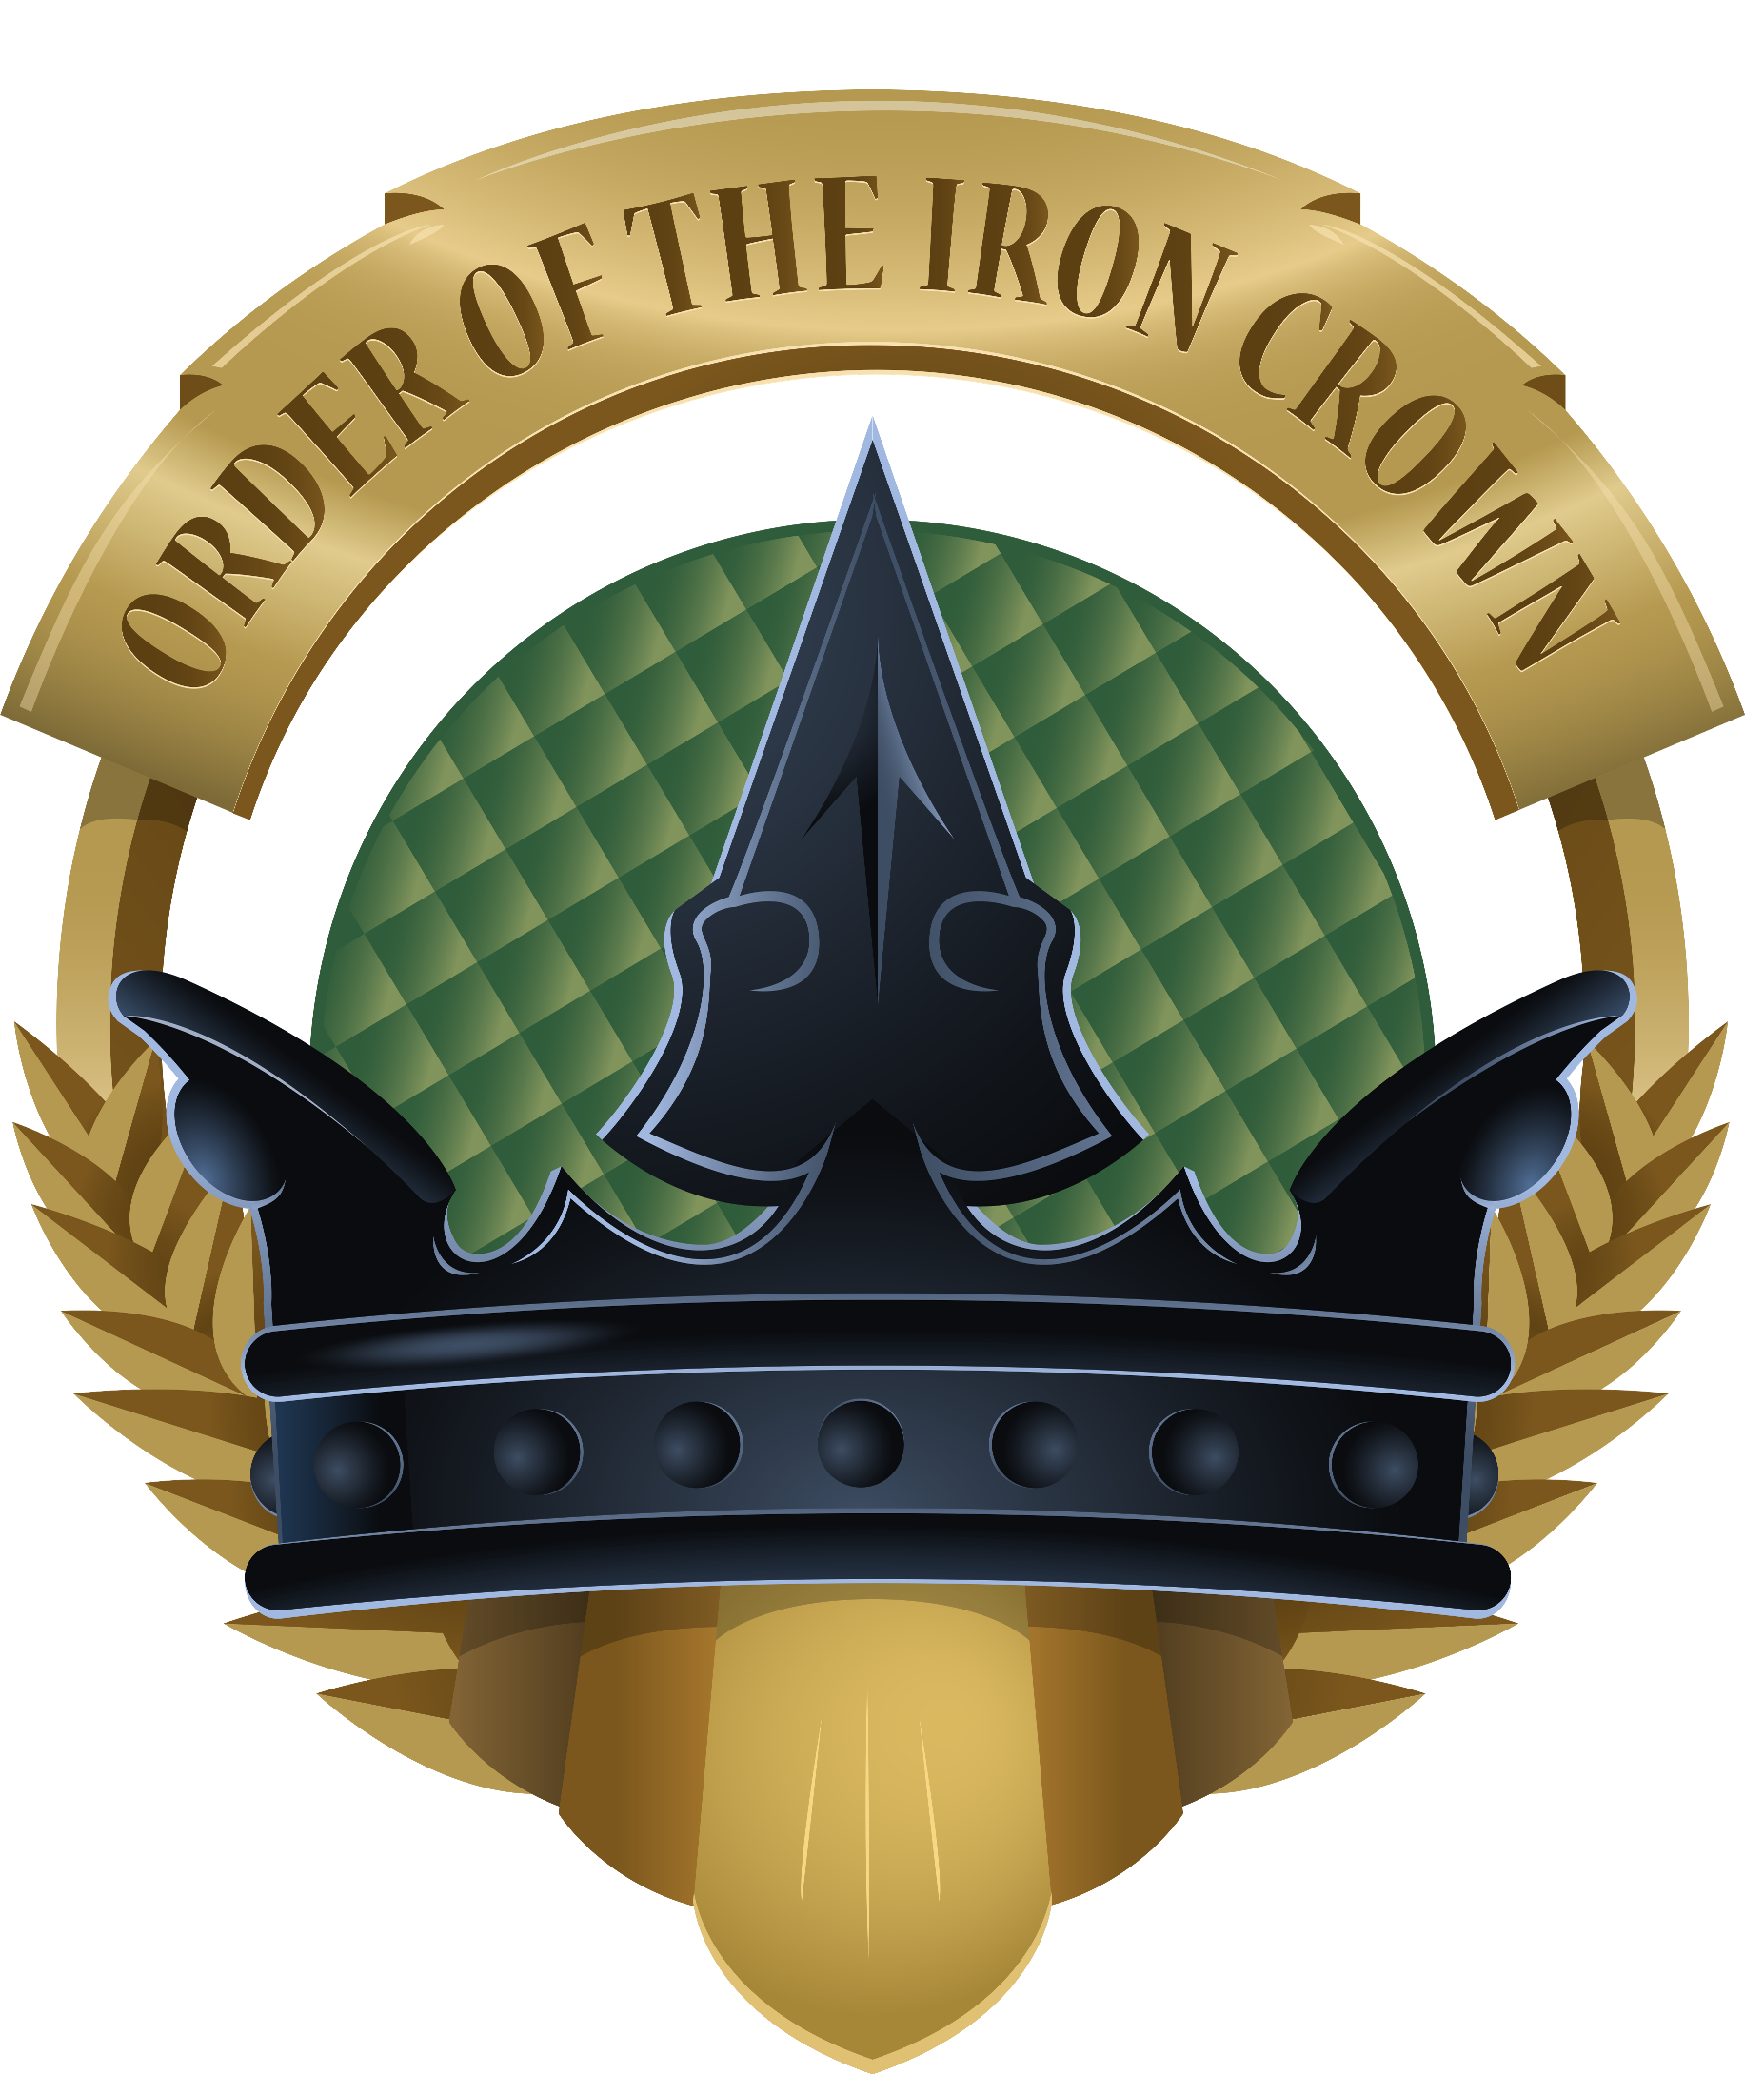 The Order of the Iron Crown.